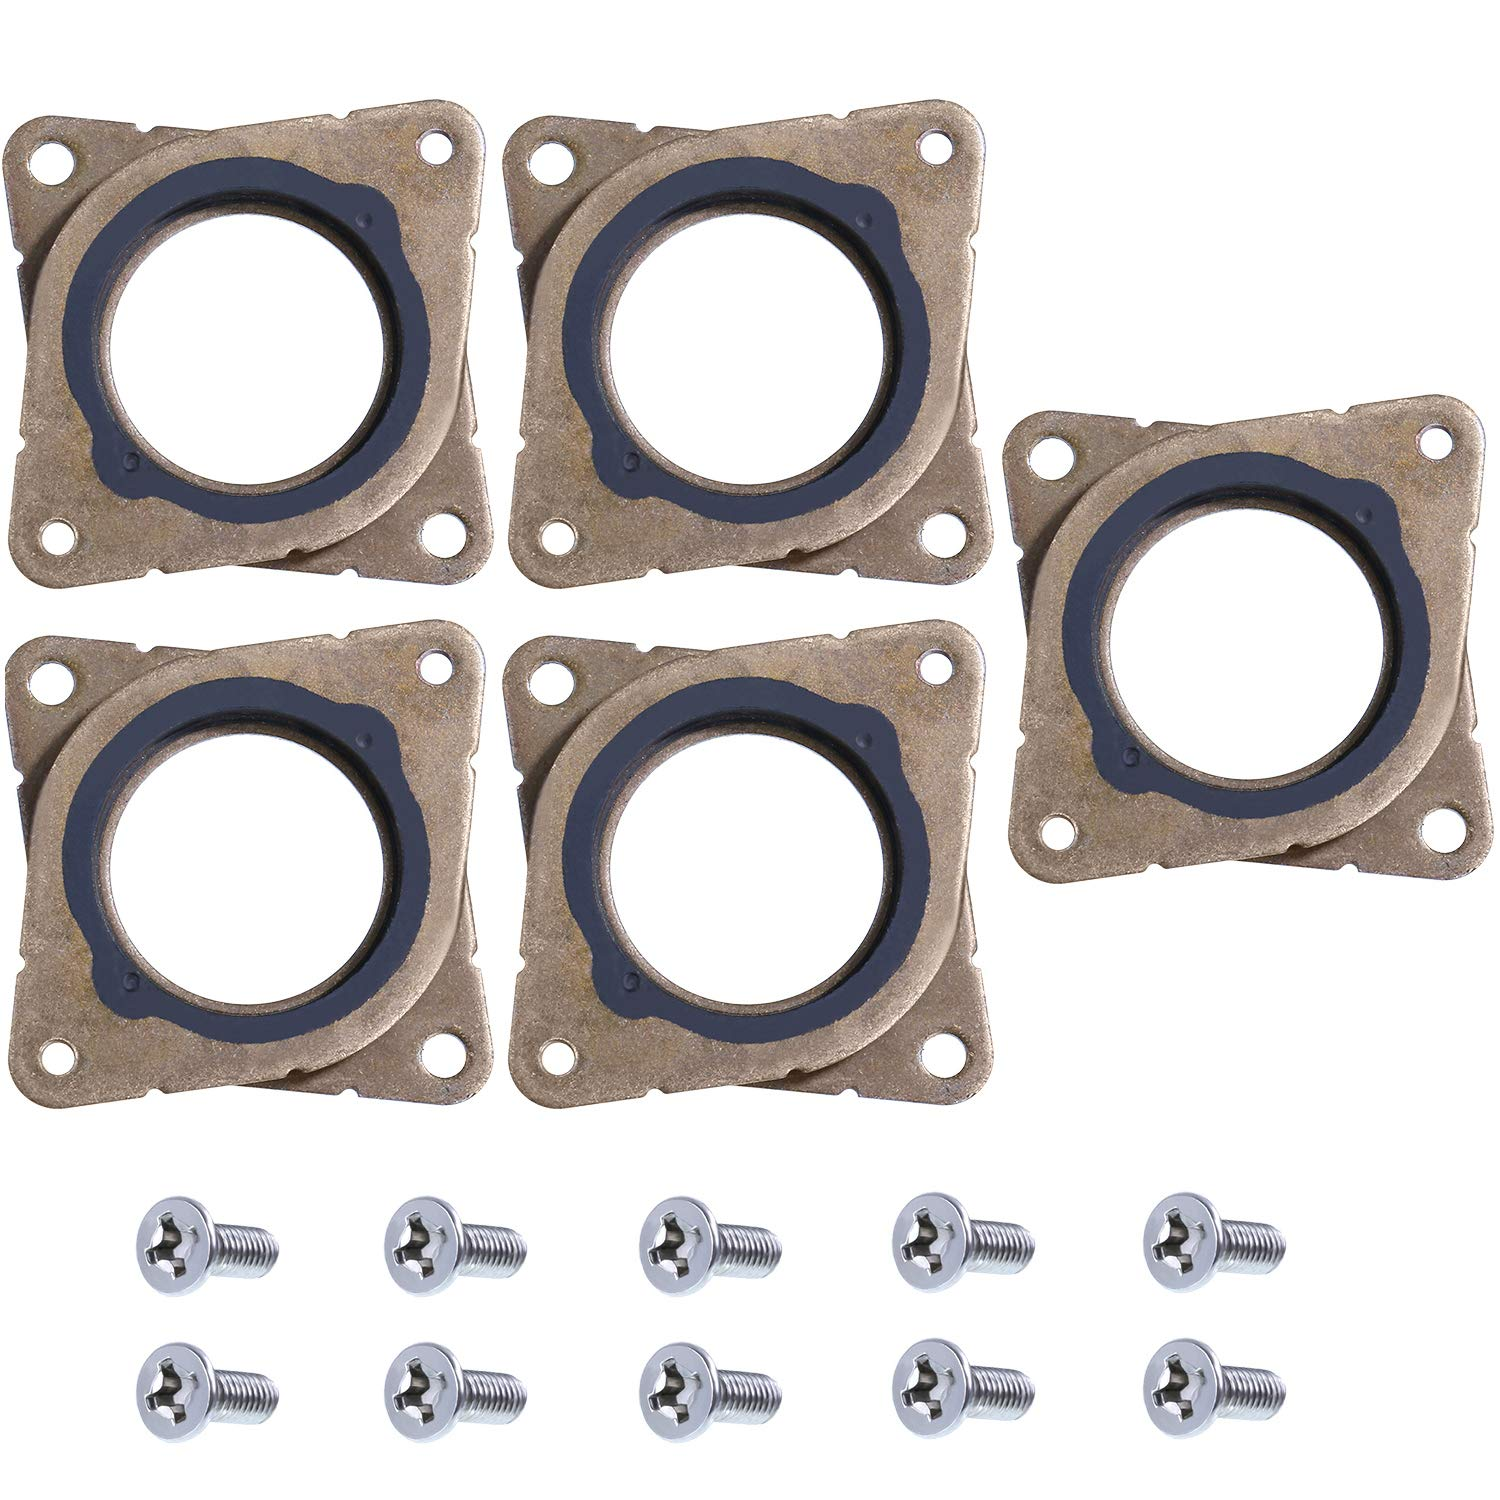 Gejoy 5 Pieces Stepper Motor Steel and Rubber Vibration Damper and 10 Pieces M3 Screws for CNC, NEMA 17 3D Printer (Color 2) by Gejoy